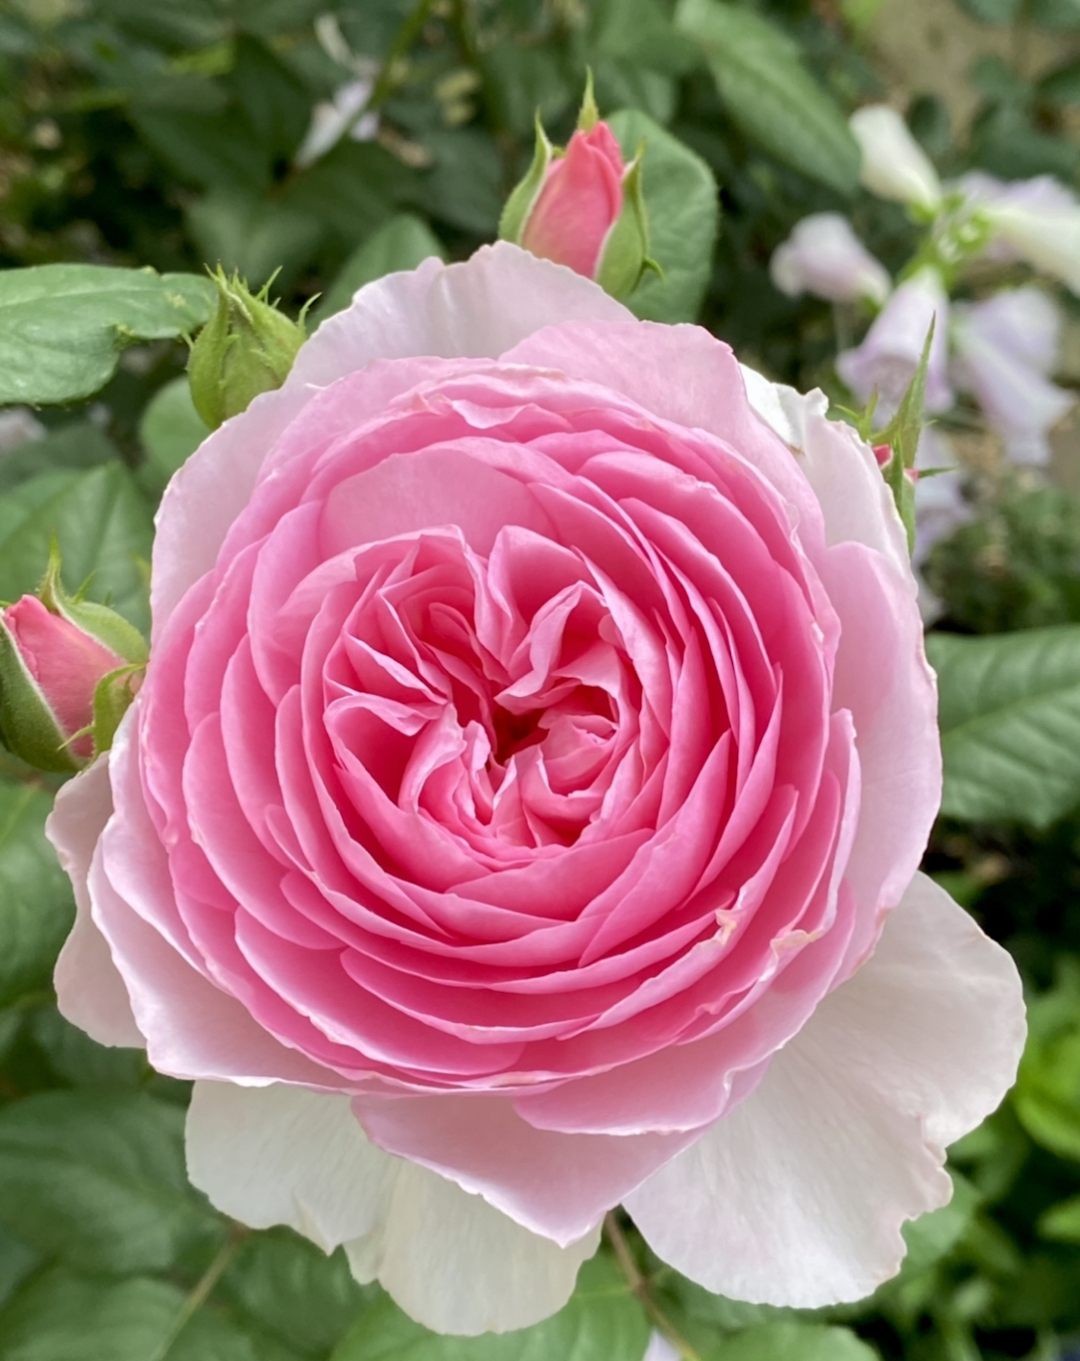 Close up of a pink rose with many petals